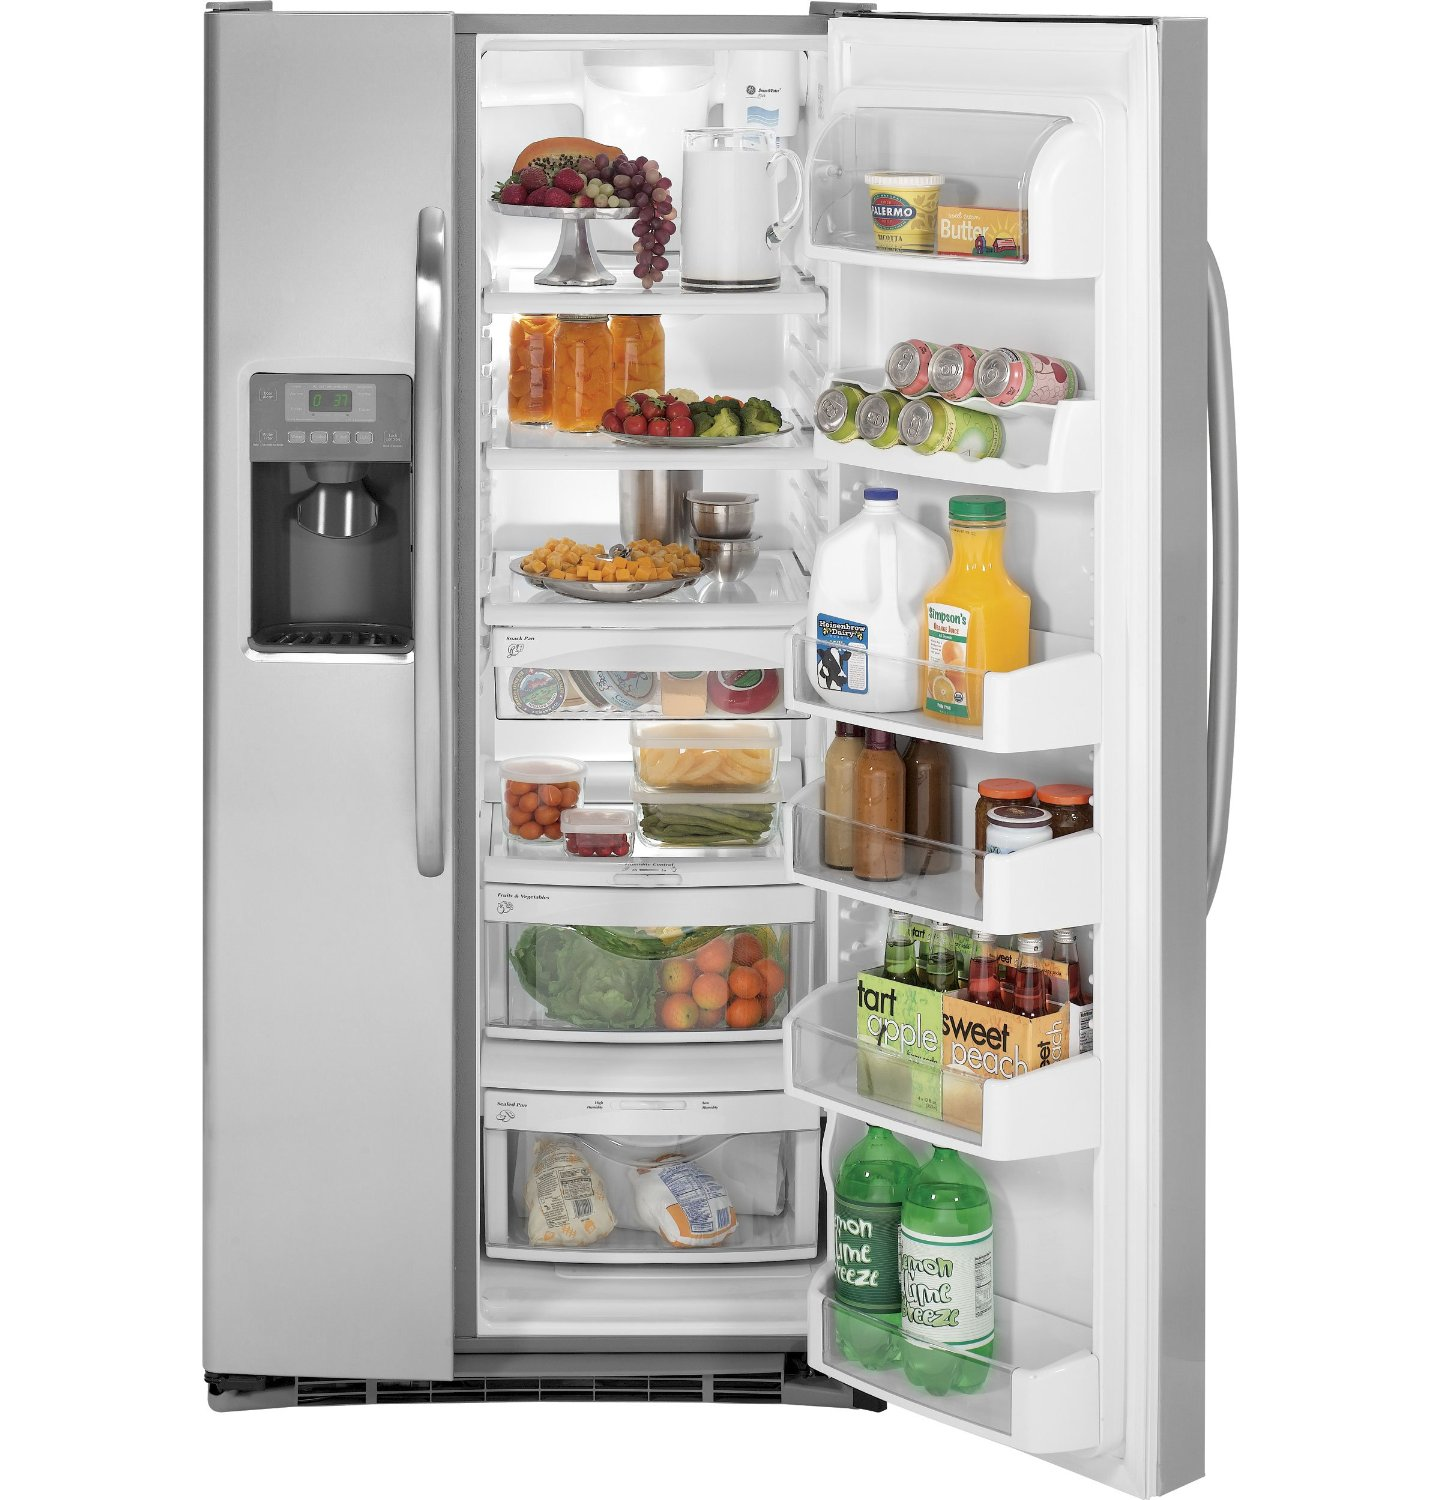 5 Best GE side by side refrigerator   Tool Box 2018-2019